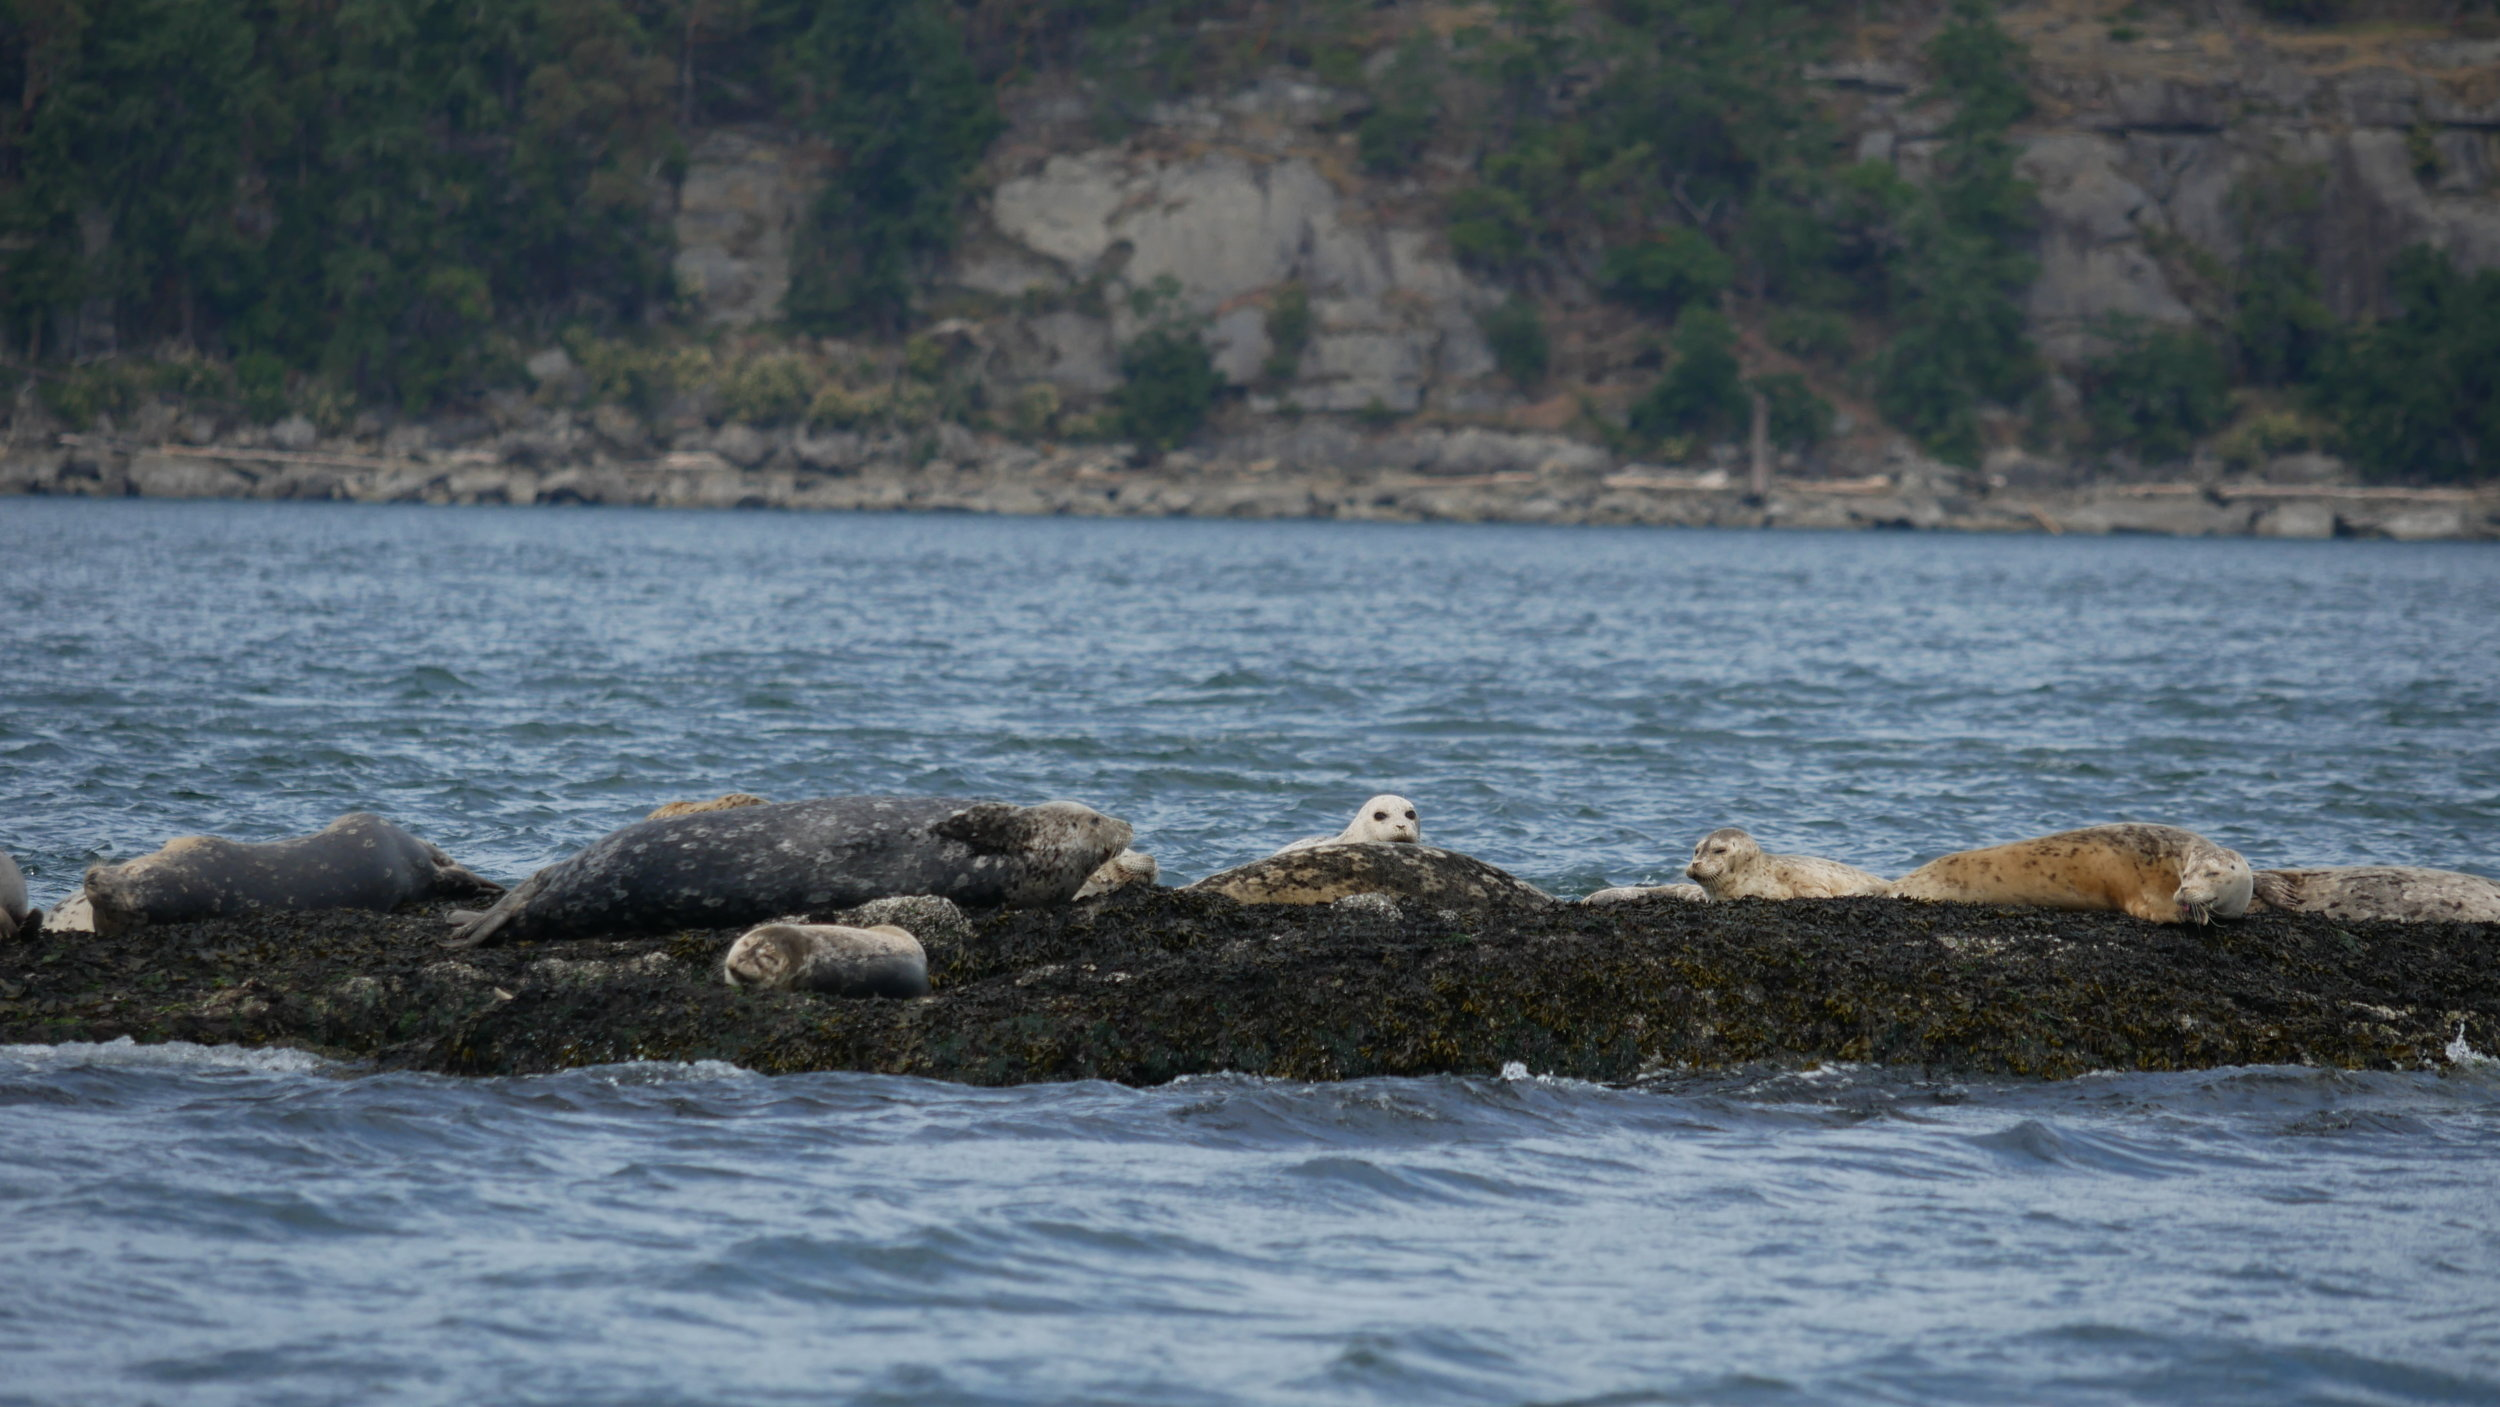 Harbour seals relaxing on the rocks. Photo by Rodrigo Menezes.